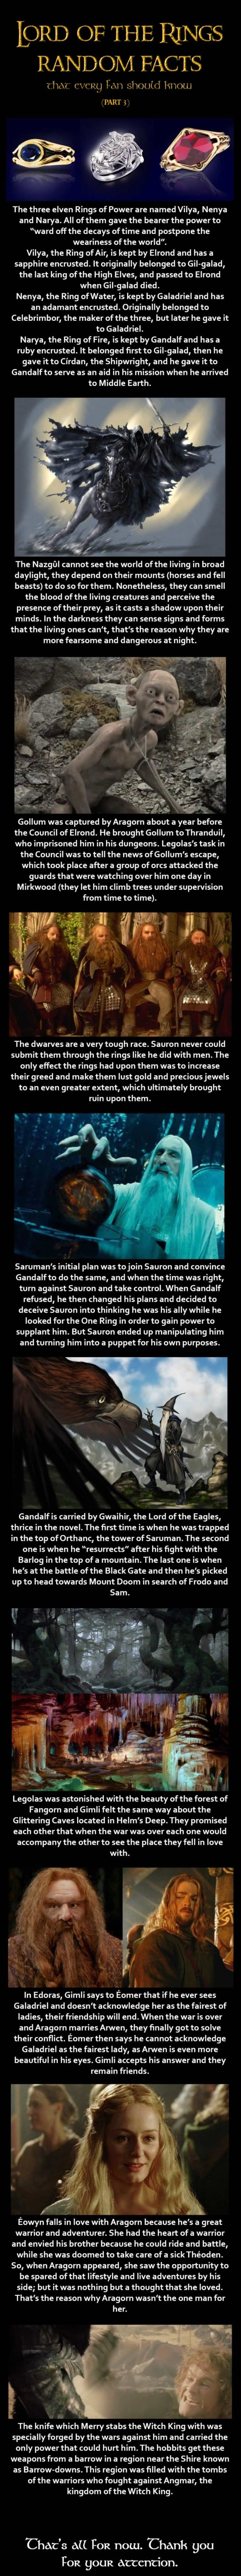 1287 Best The Lord Of The Rings Images On Pinterest Middle Earth